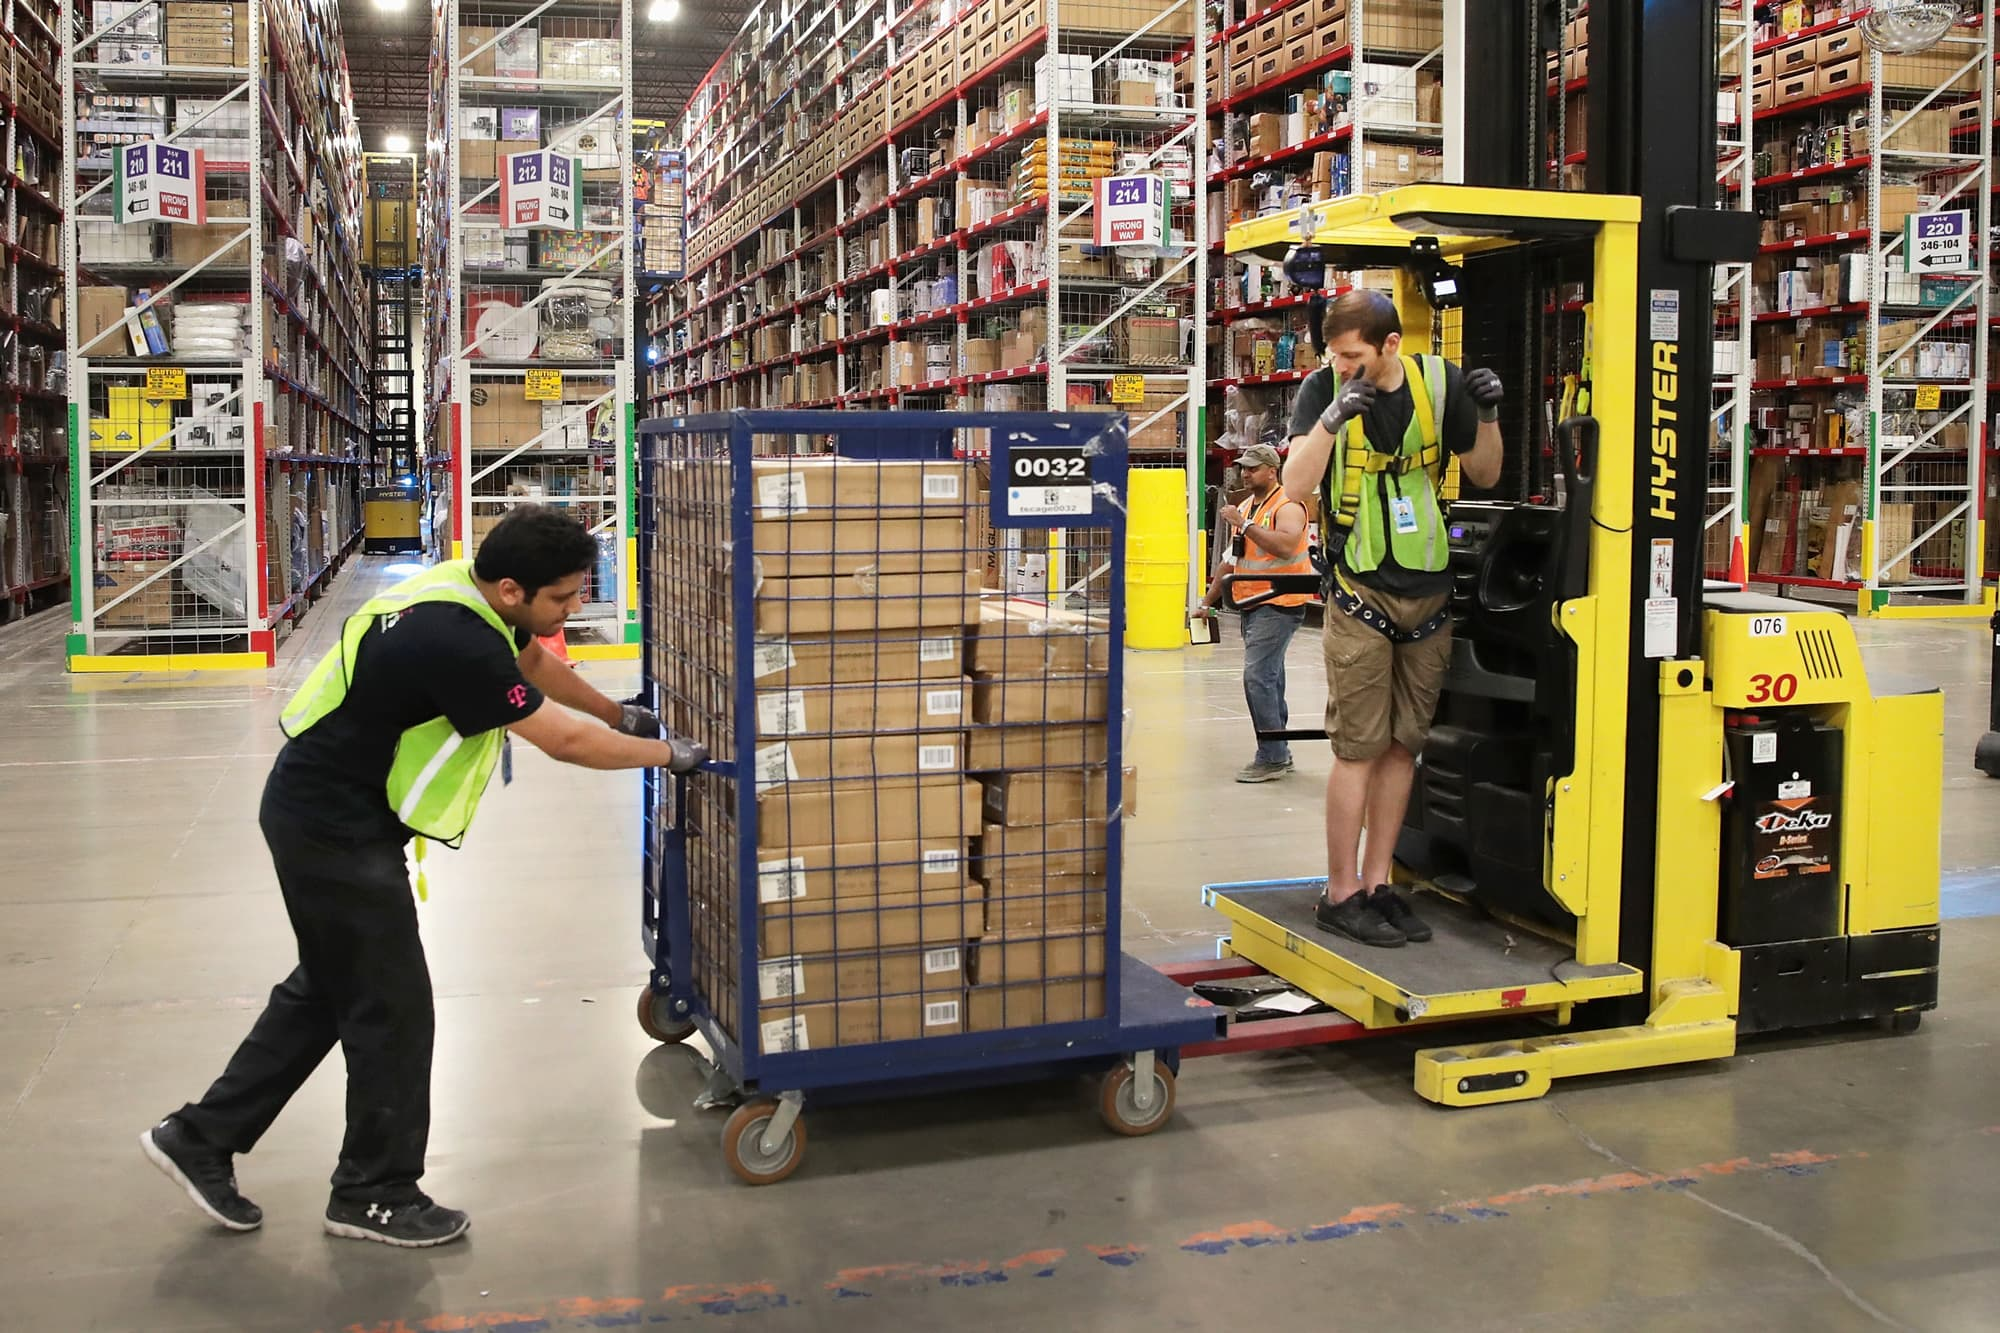 Amazon warehouse workers go on strike in Germany over Covid-19 114